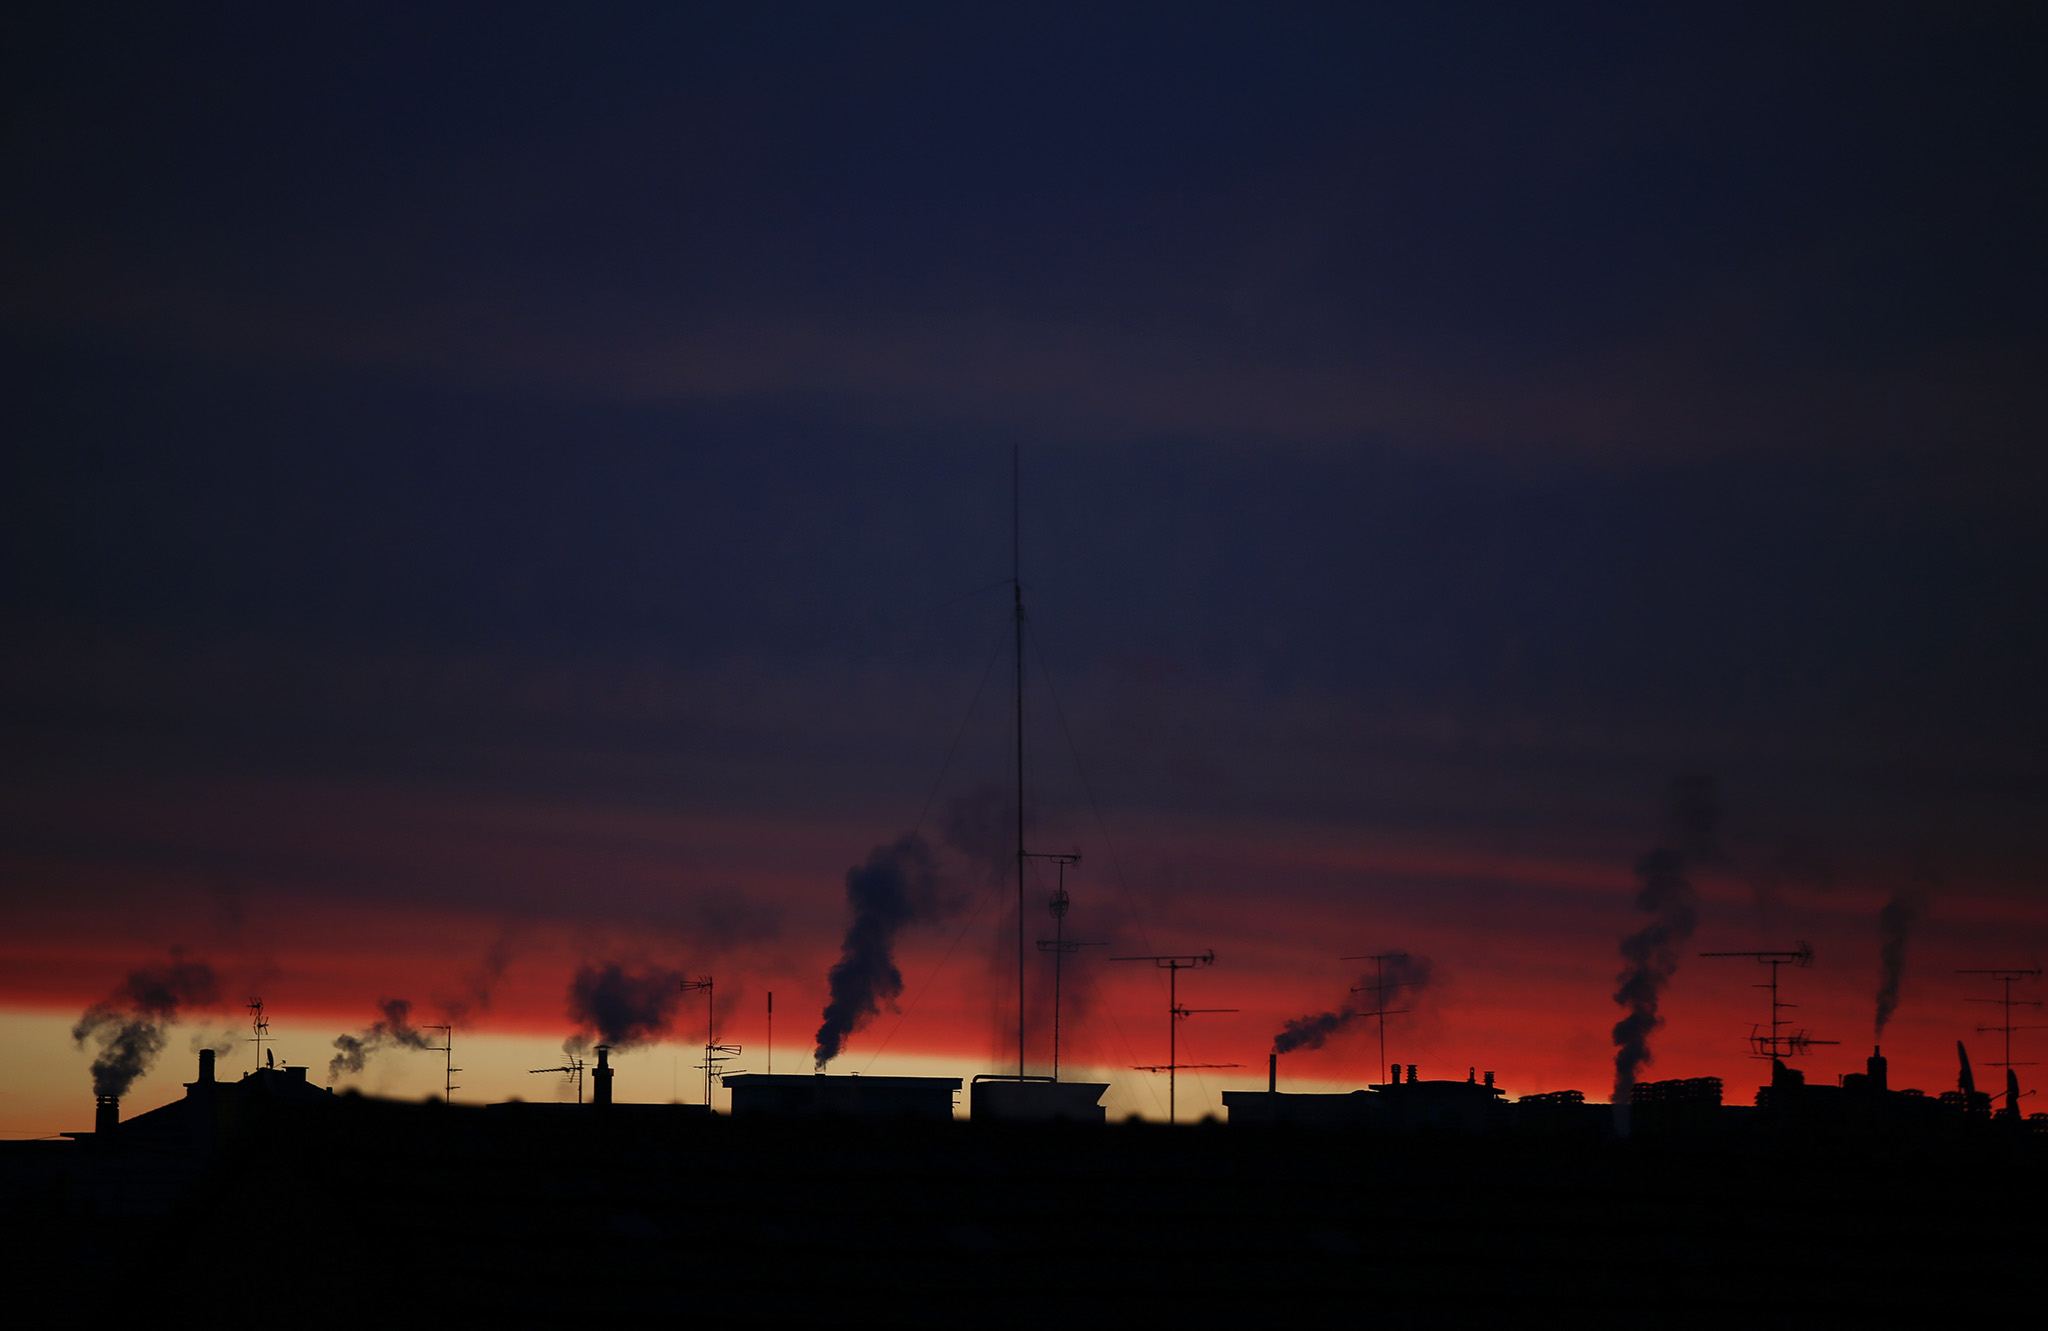 Smoke billows from chimneys of buildings as the sun rise in the early morning in Milan, Italy